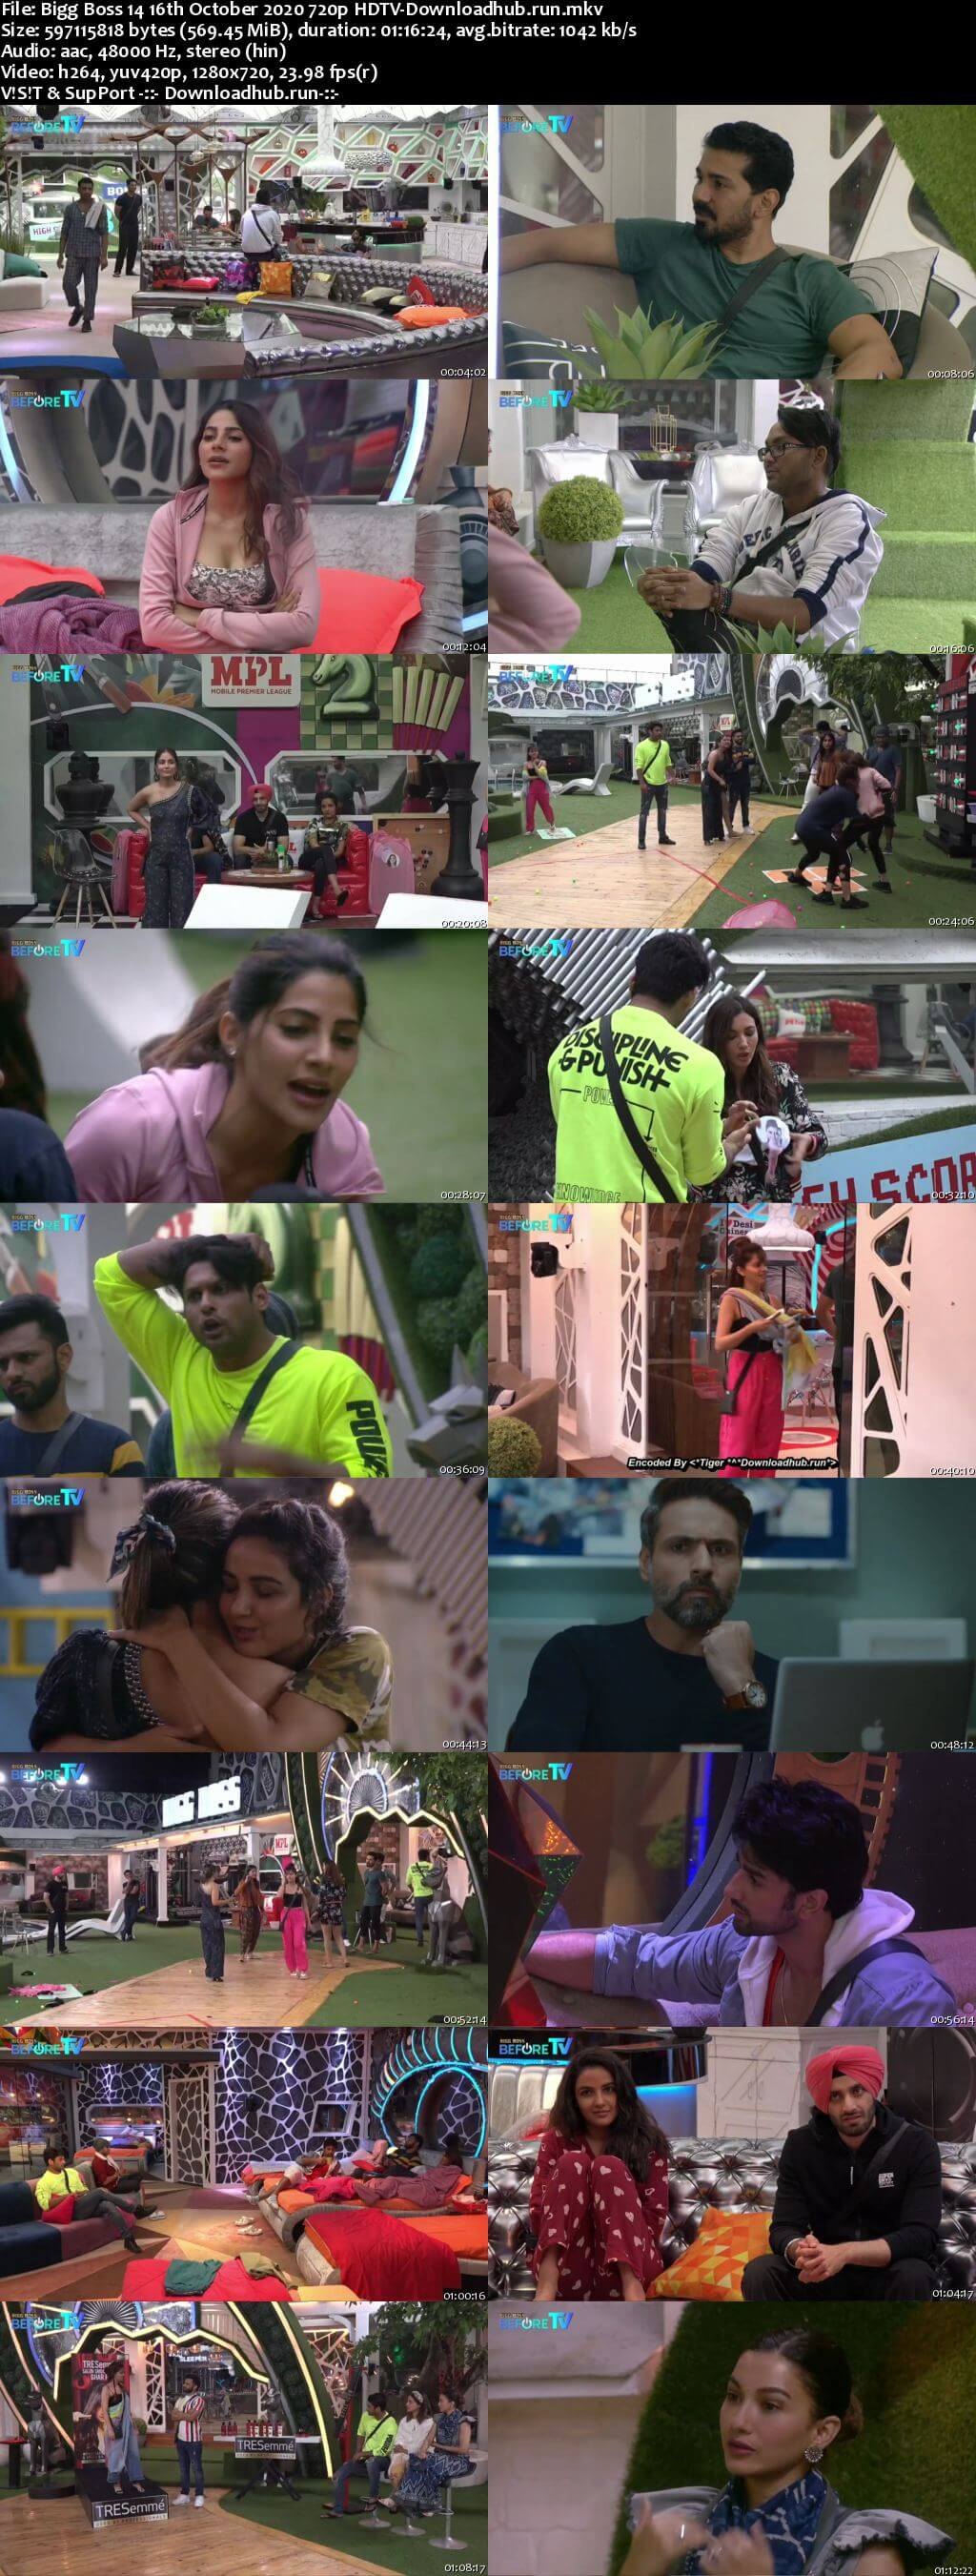 Bigg Boss 14 16th October 2020 Episode 13 720p 480p HDTV